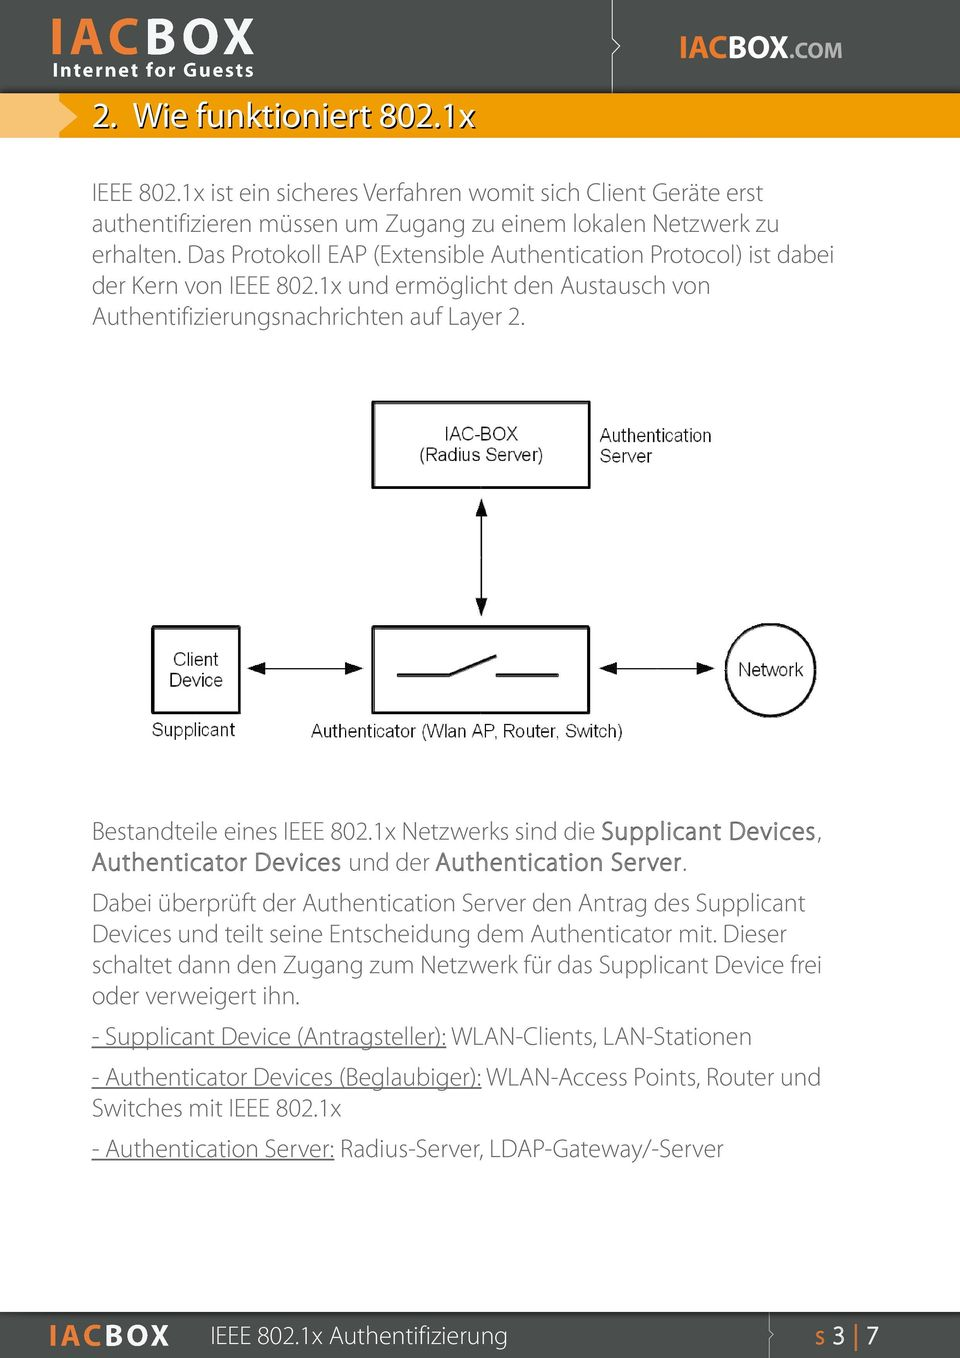 1x Netzwerks sind die Supplicant Devices, Authenticator Devices und der Authentication Server.